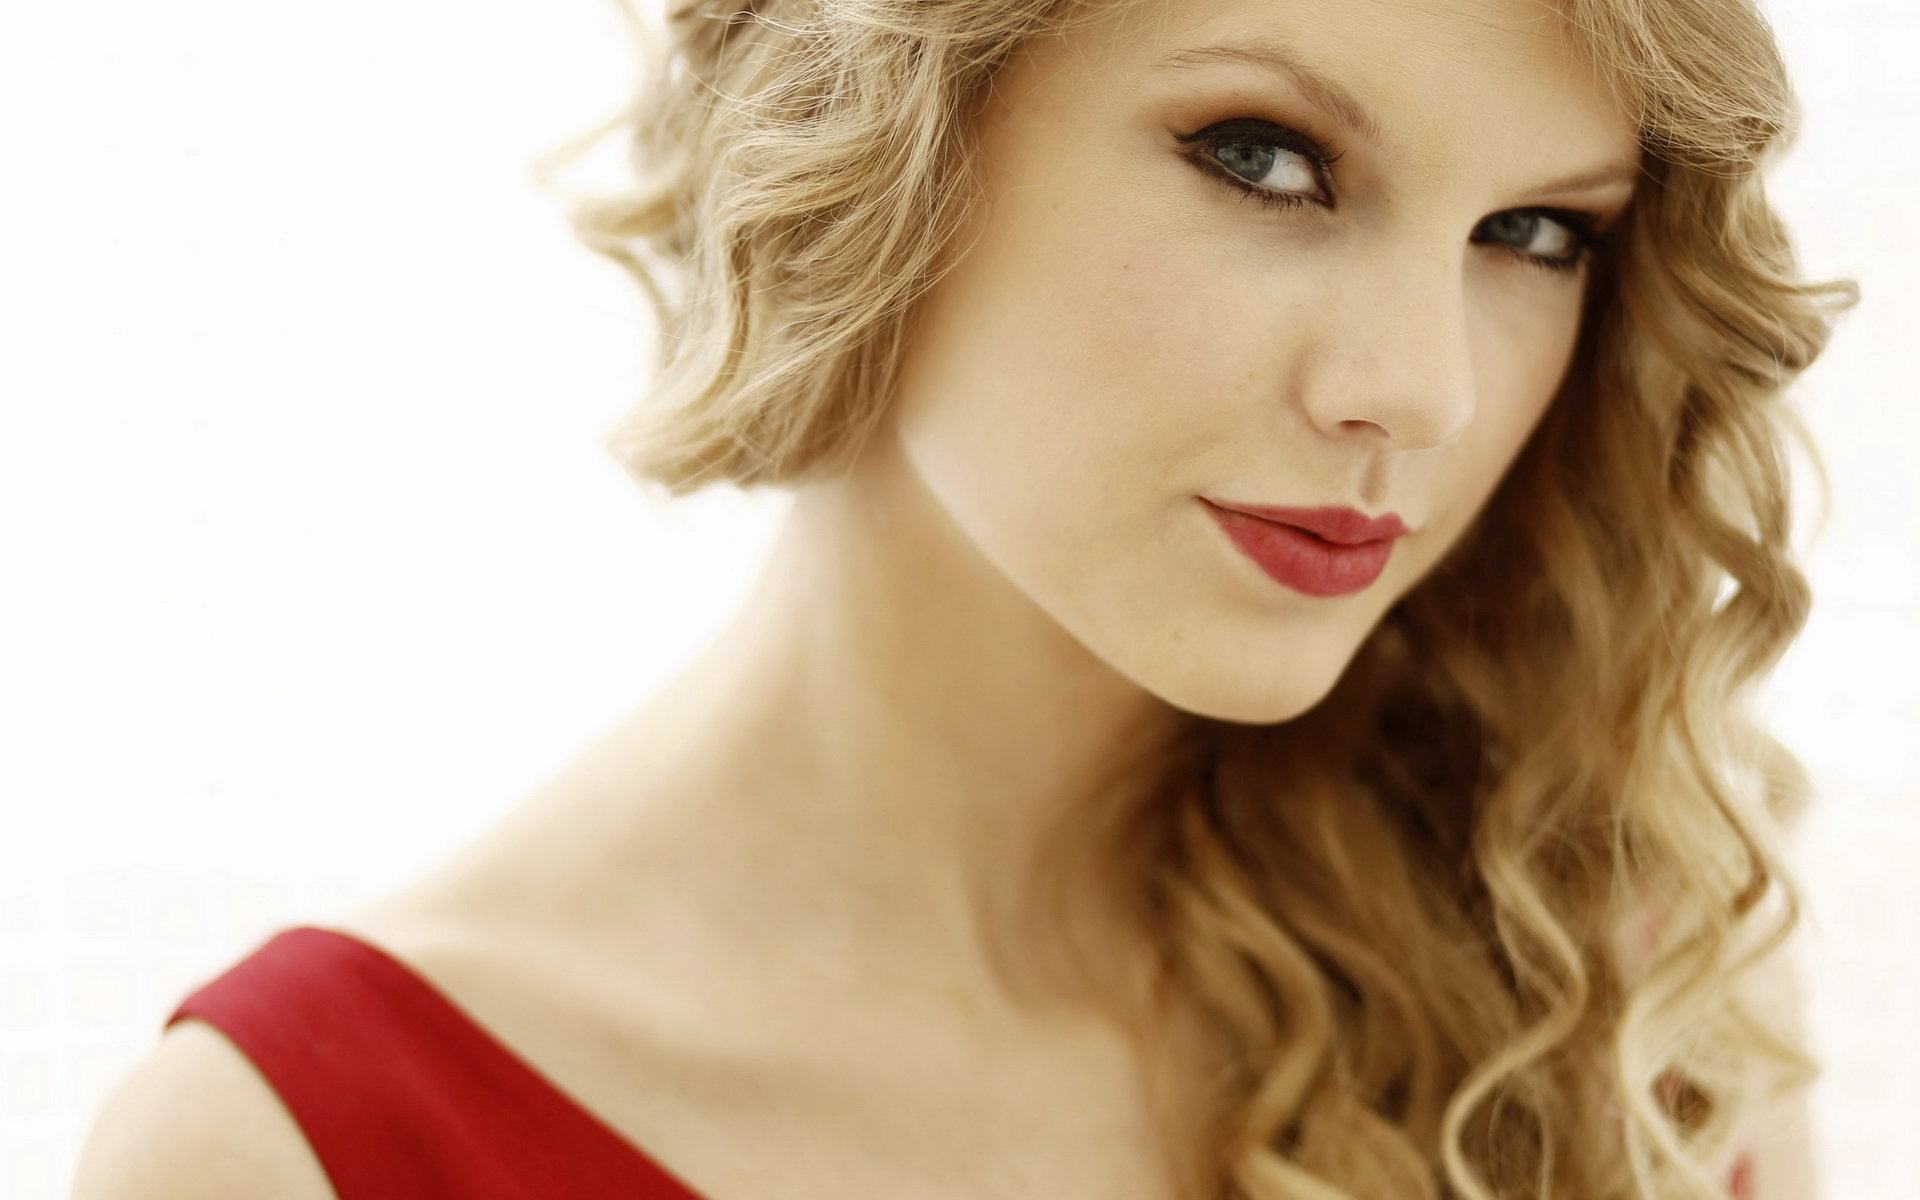 taylor swift fashion wallpaper background